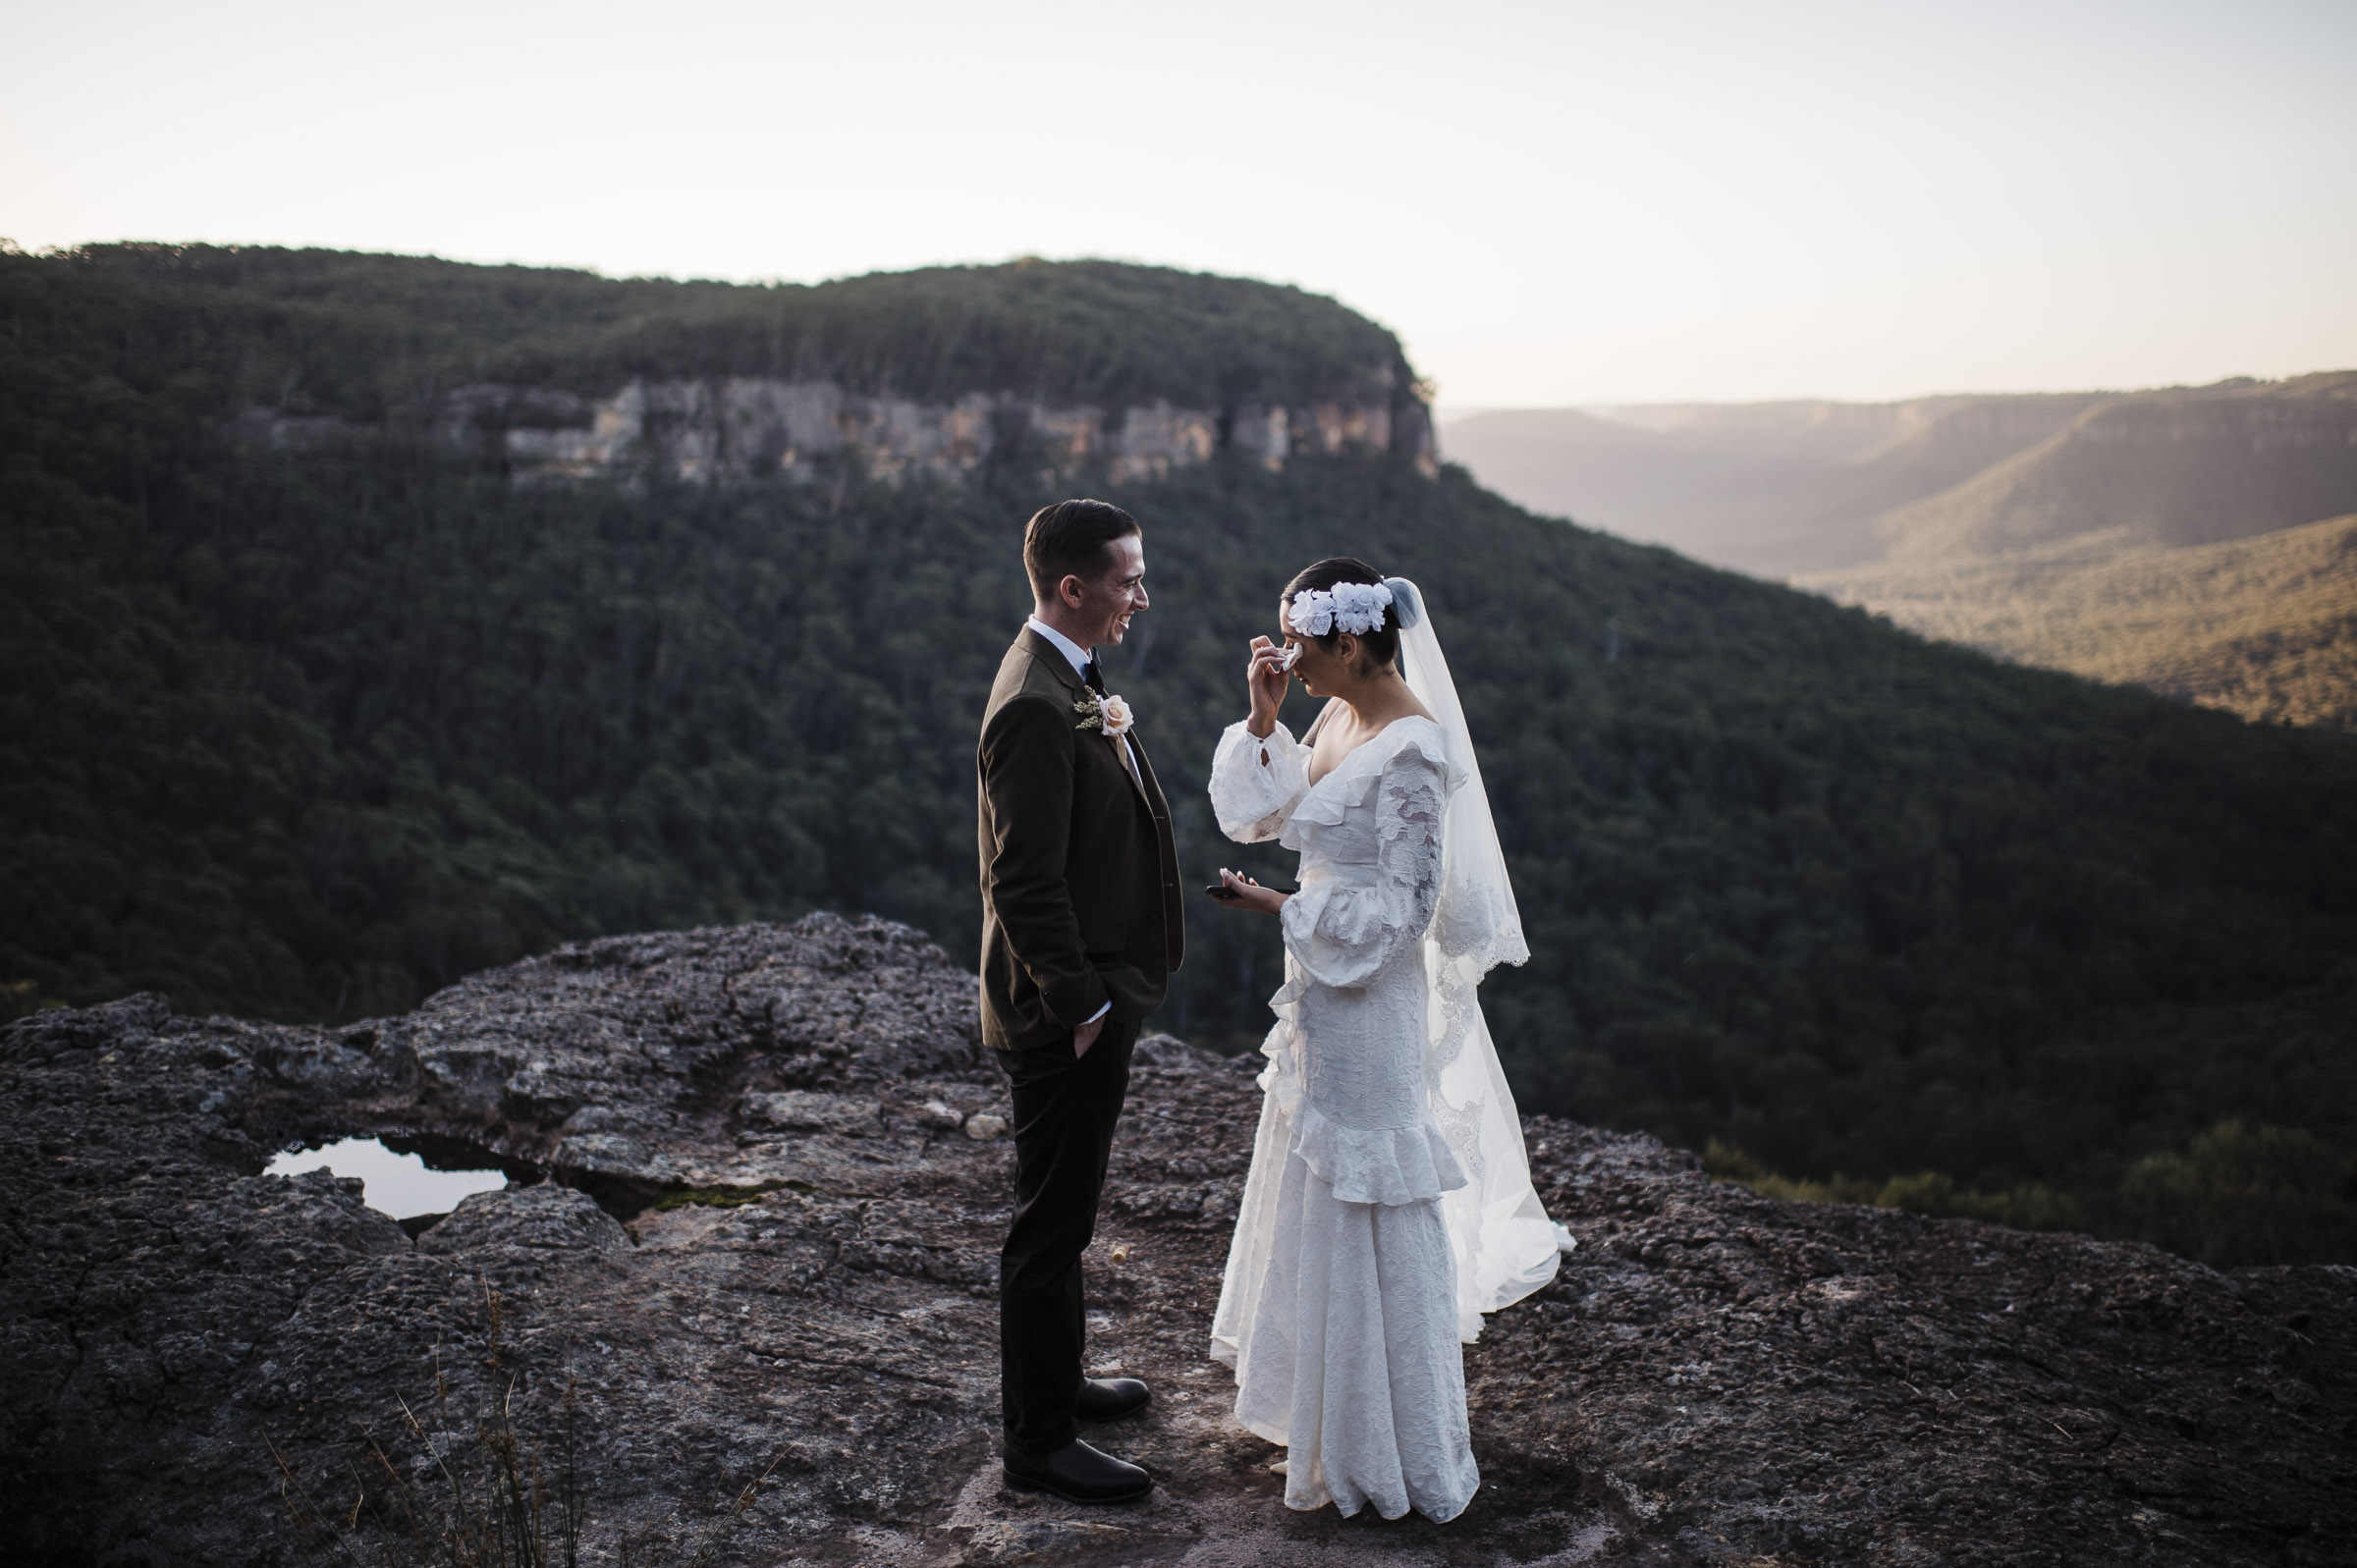 Maddie_Jade_Blue_Mountains_Anteloping_Elopement_Photographer_Blog-78.jpg